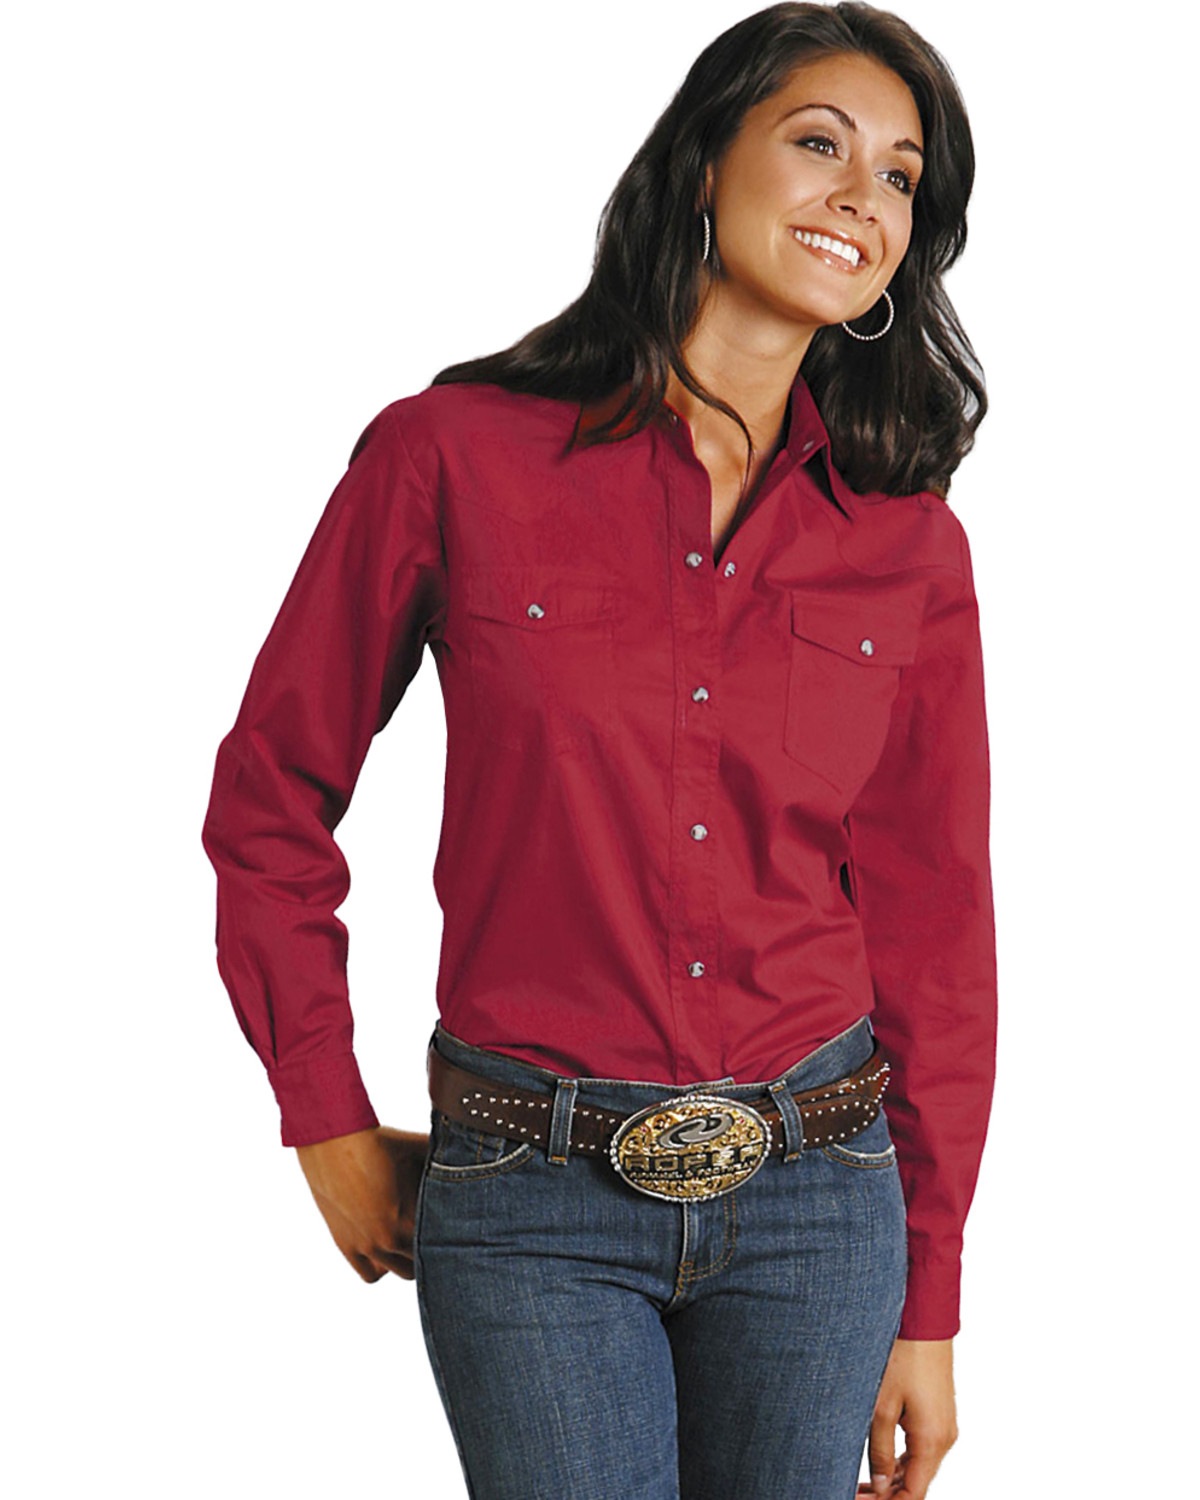 b06845e5cb Roper Ladies Western Shirts – EDGE Engineering and Consulting Limited